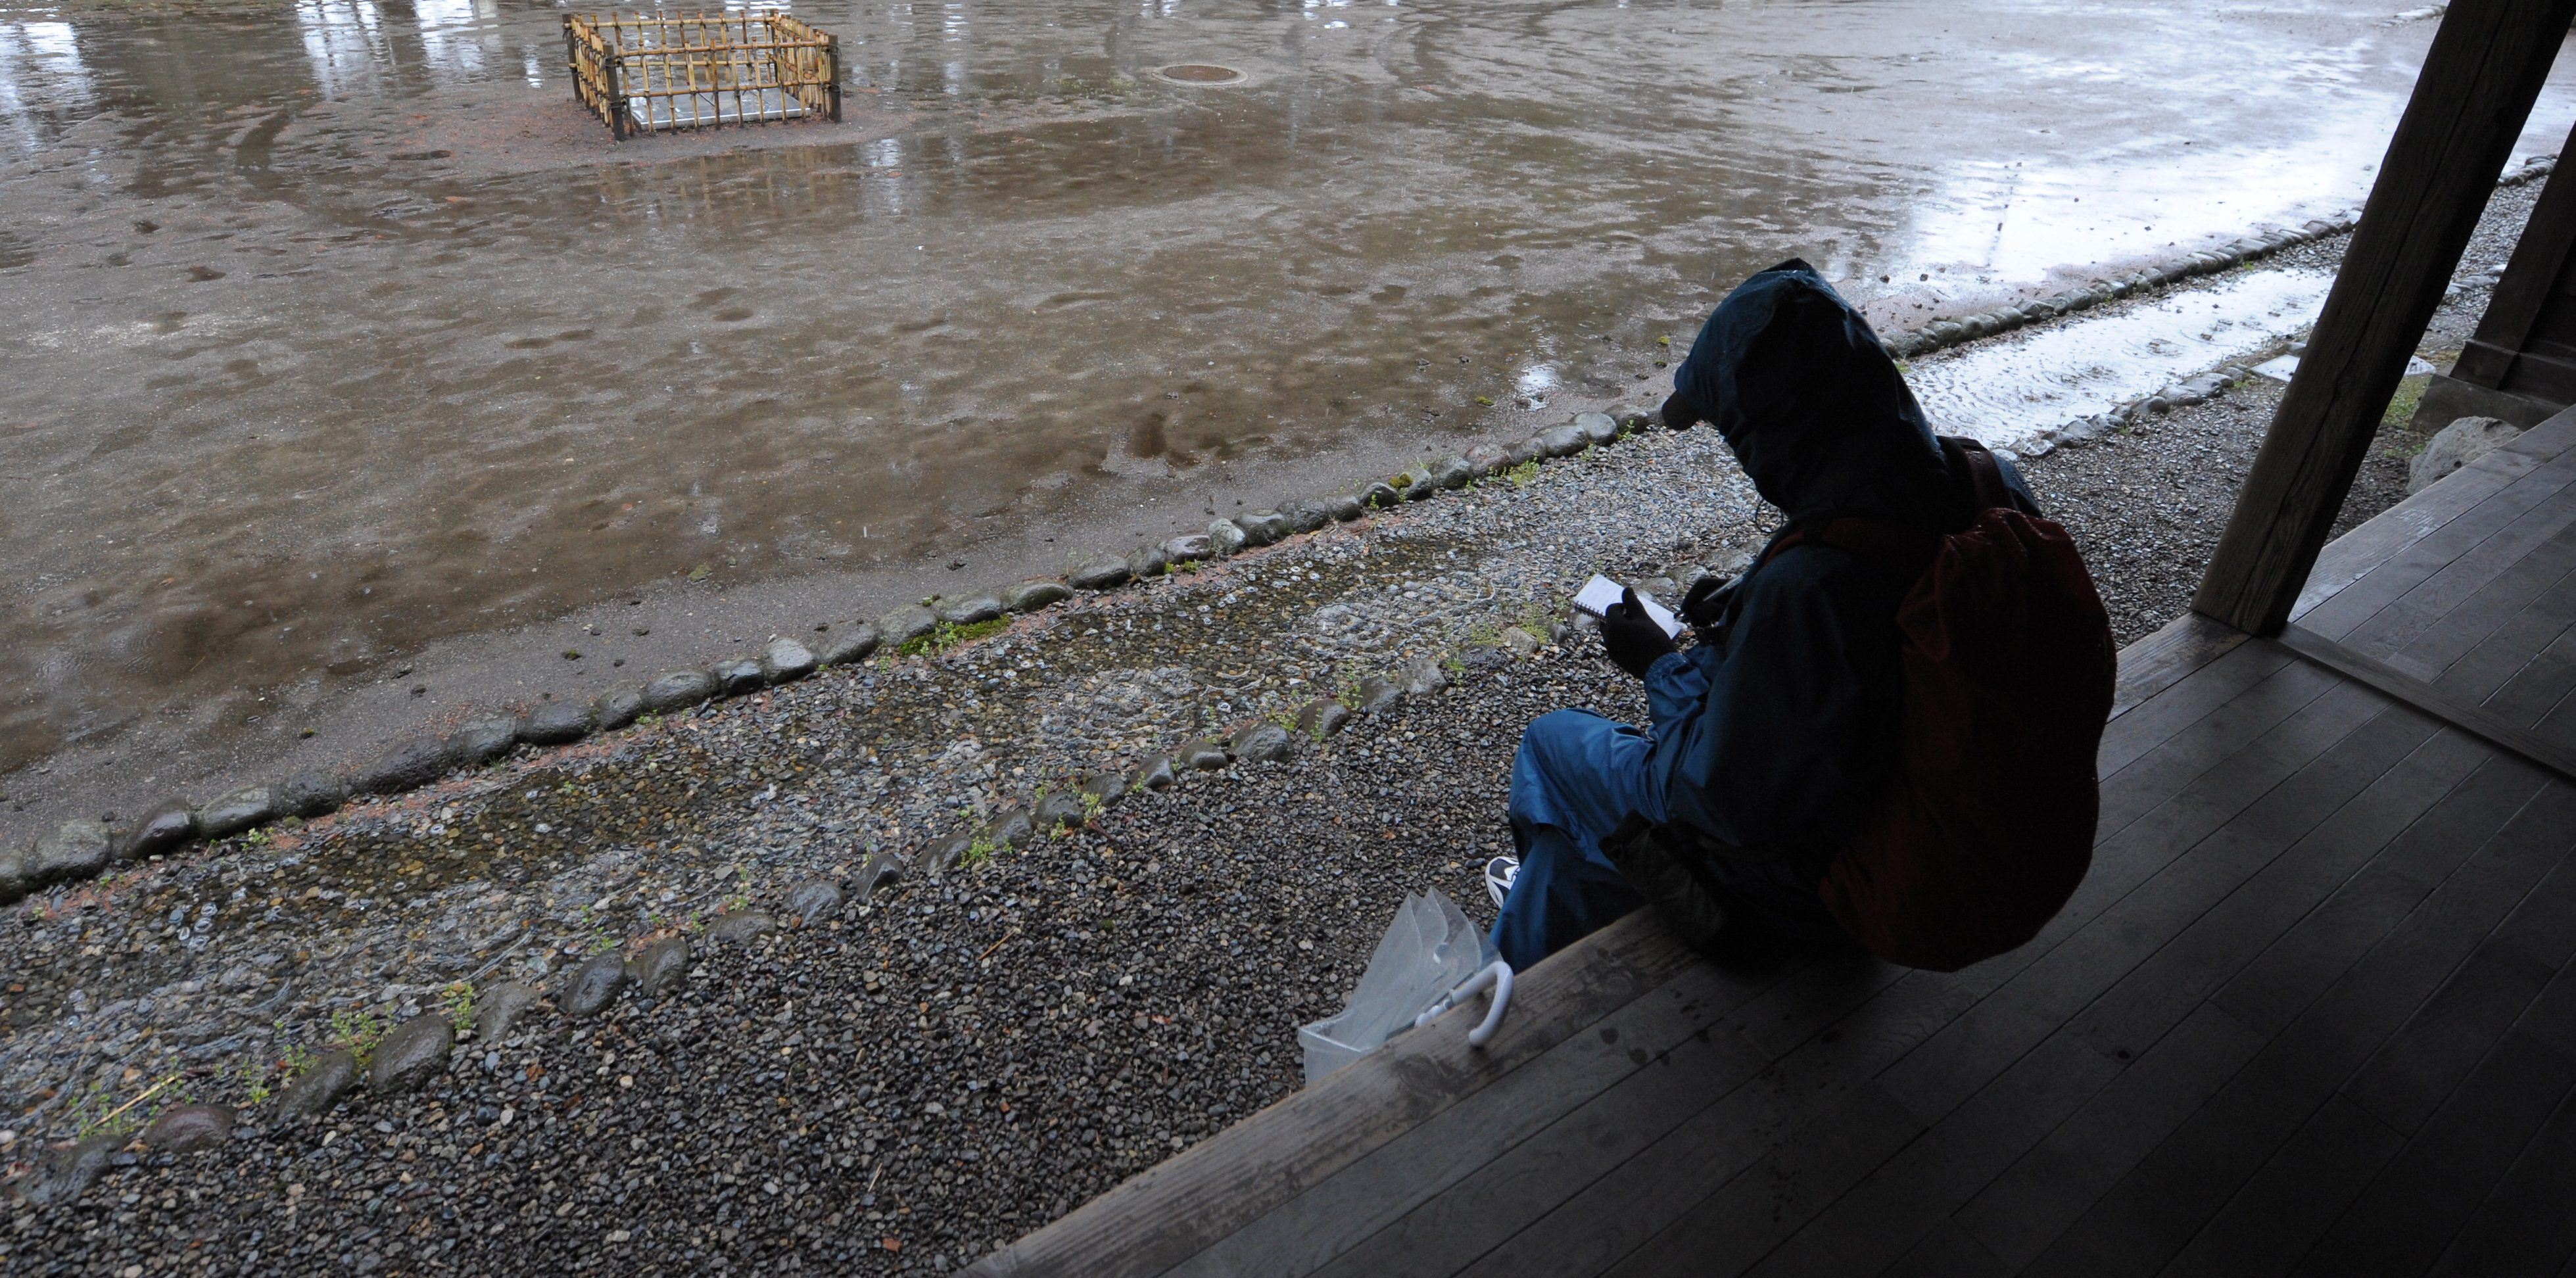 A hikikomori writes a haiku while seeking shelter from heavy rains at a traditional farm house in Nikko, Japan, 28 April 2010.